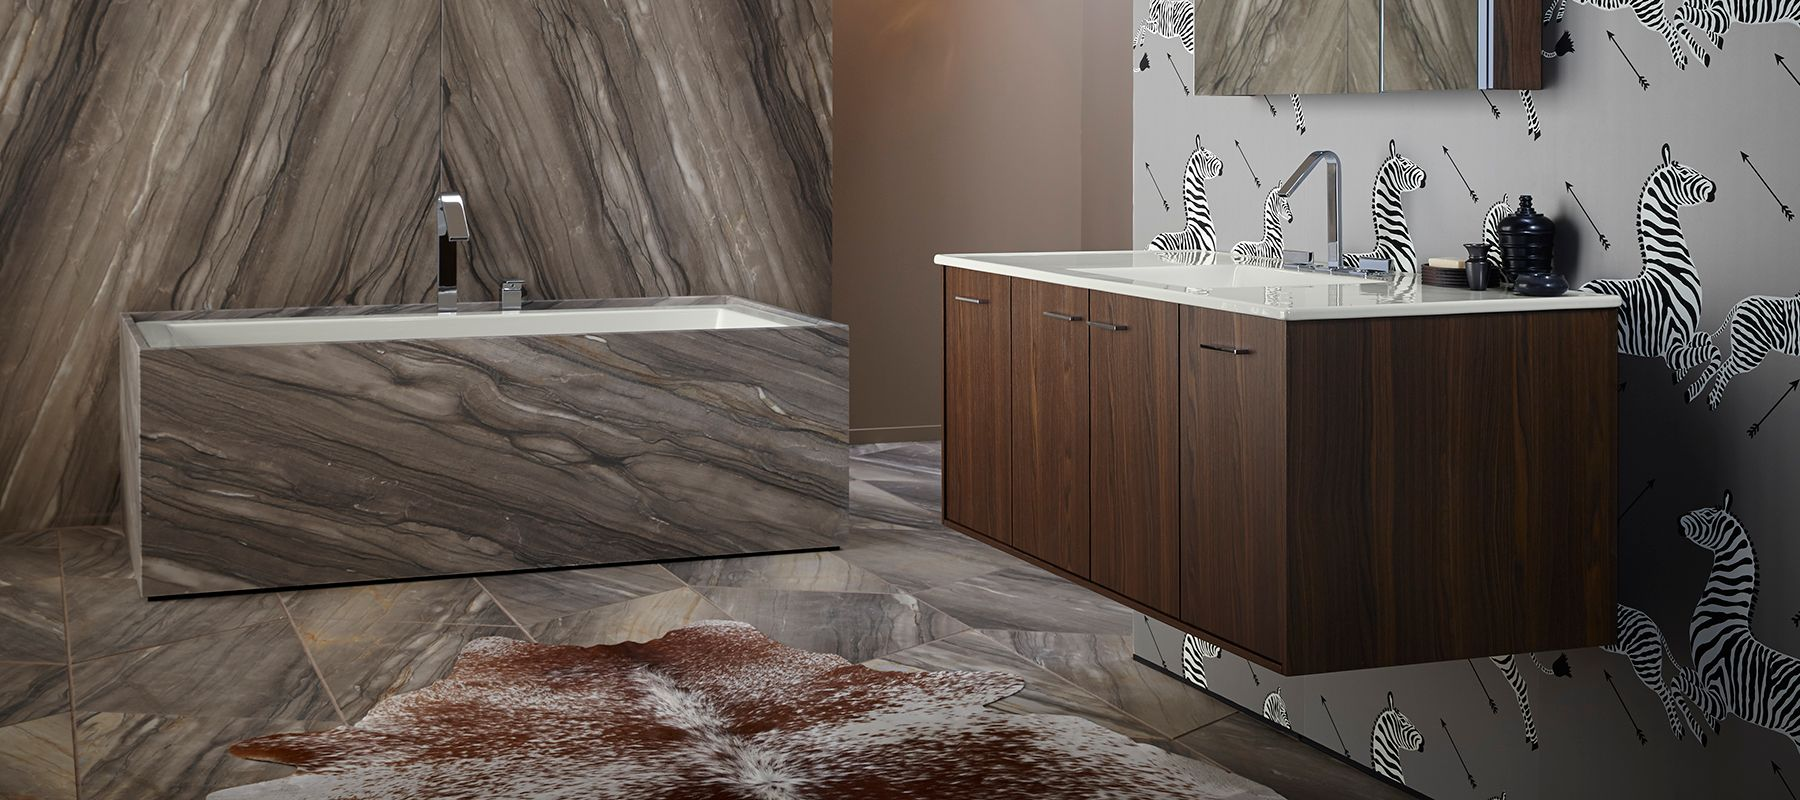 Double Bathroom Vanities South Africa bathroom vanities |bathroom | kohler